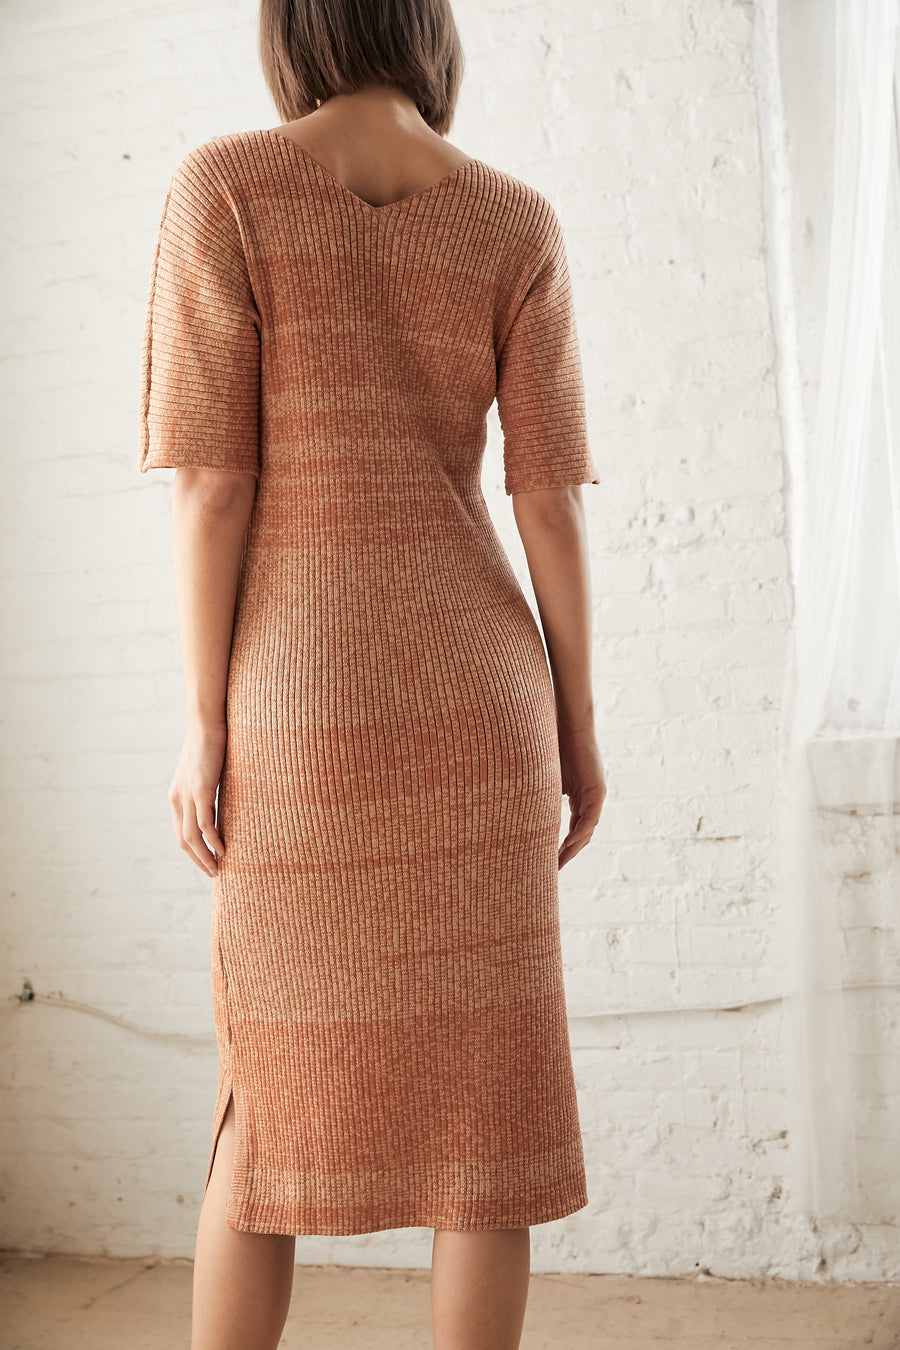 Rib Dress : Baked Clay